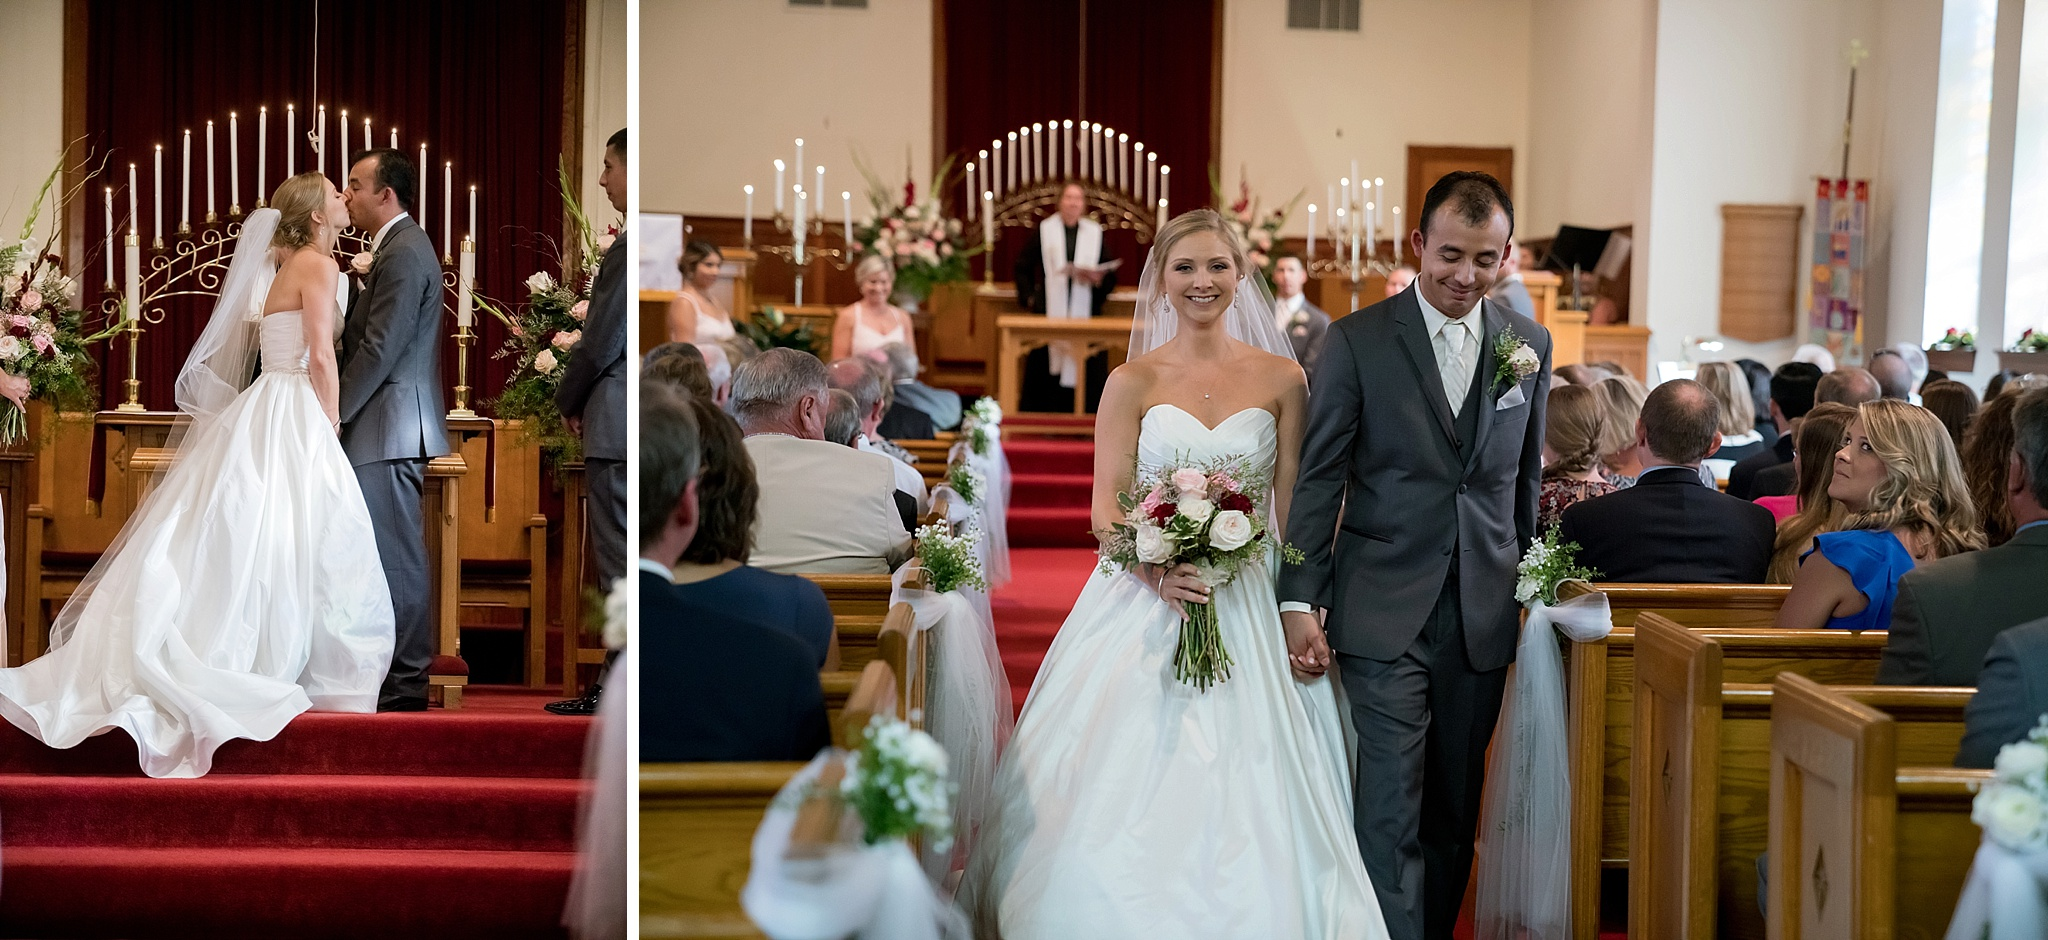 Williamston-NC-Wedding-Photographer-190.jpg